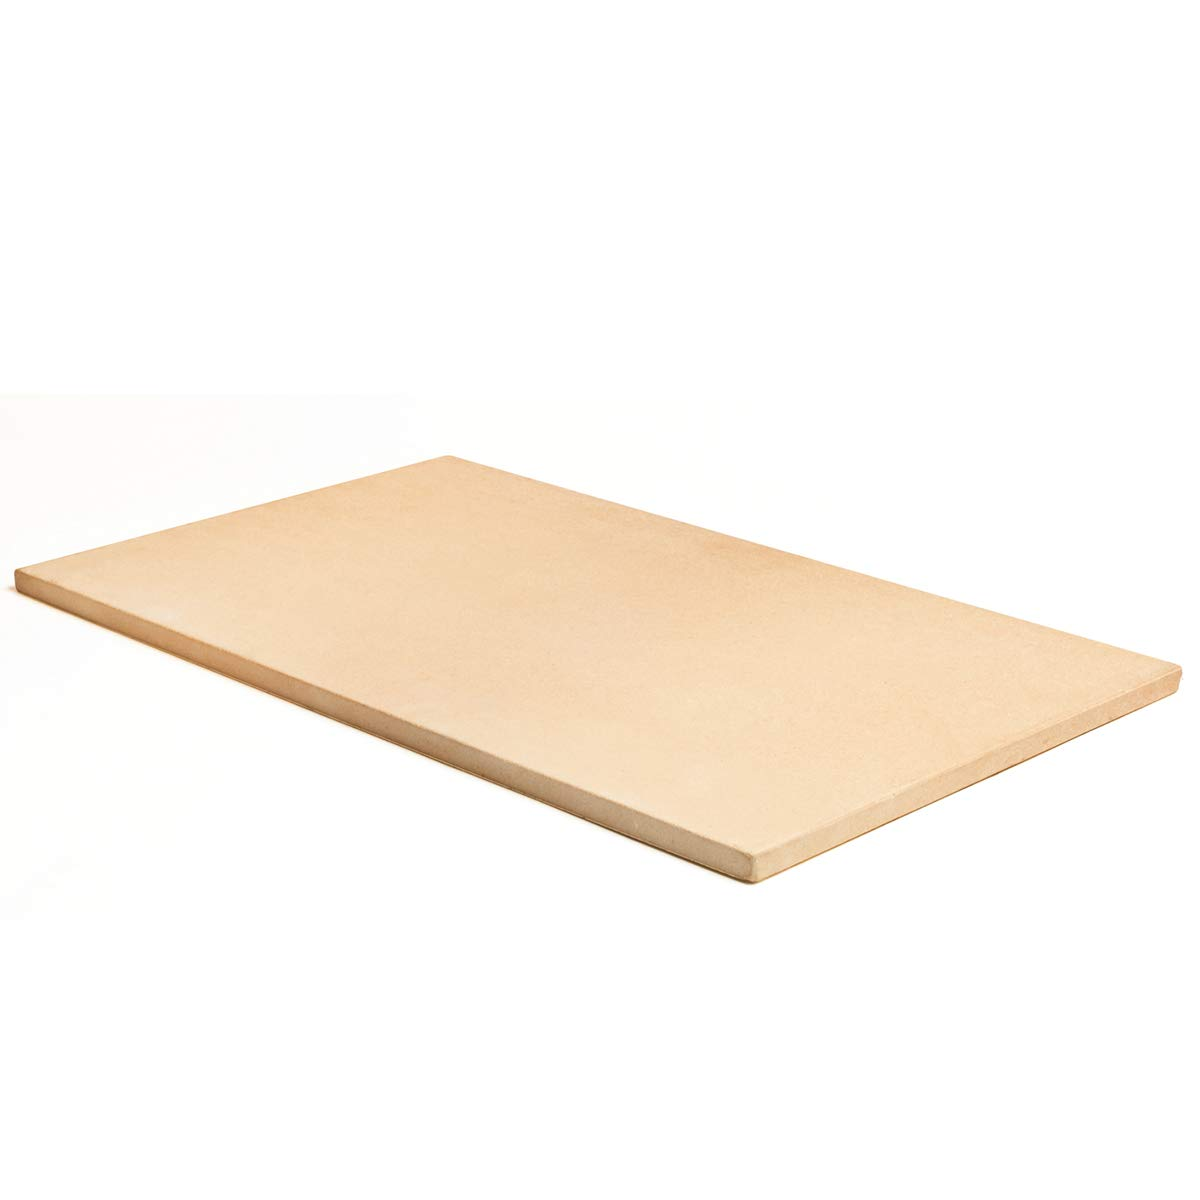 Pizzacraft PC9899 Rectangular ThermaBond Baking